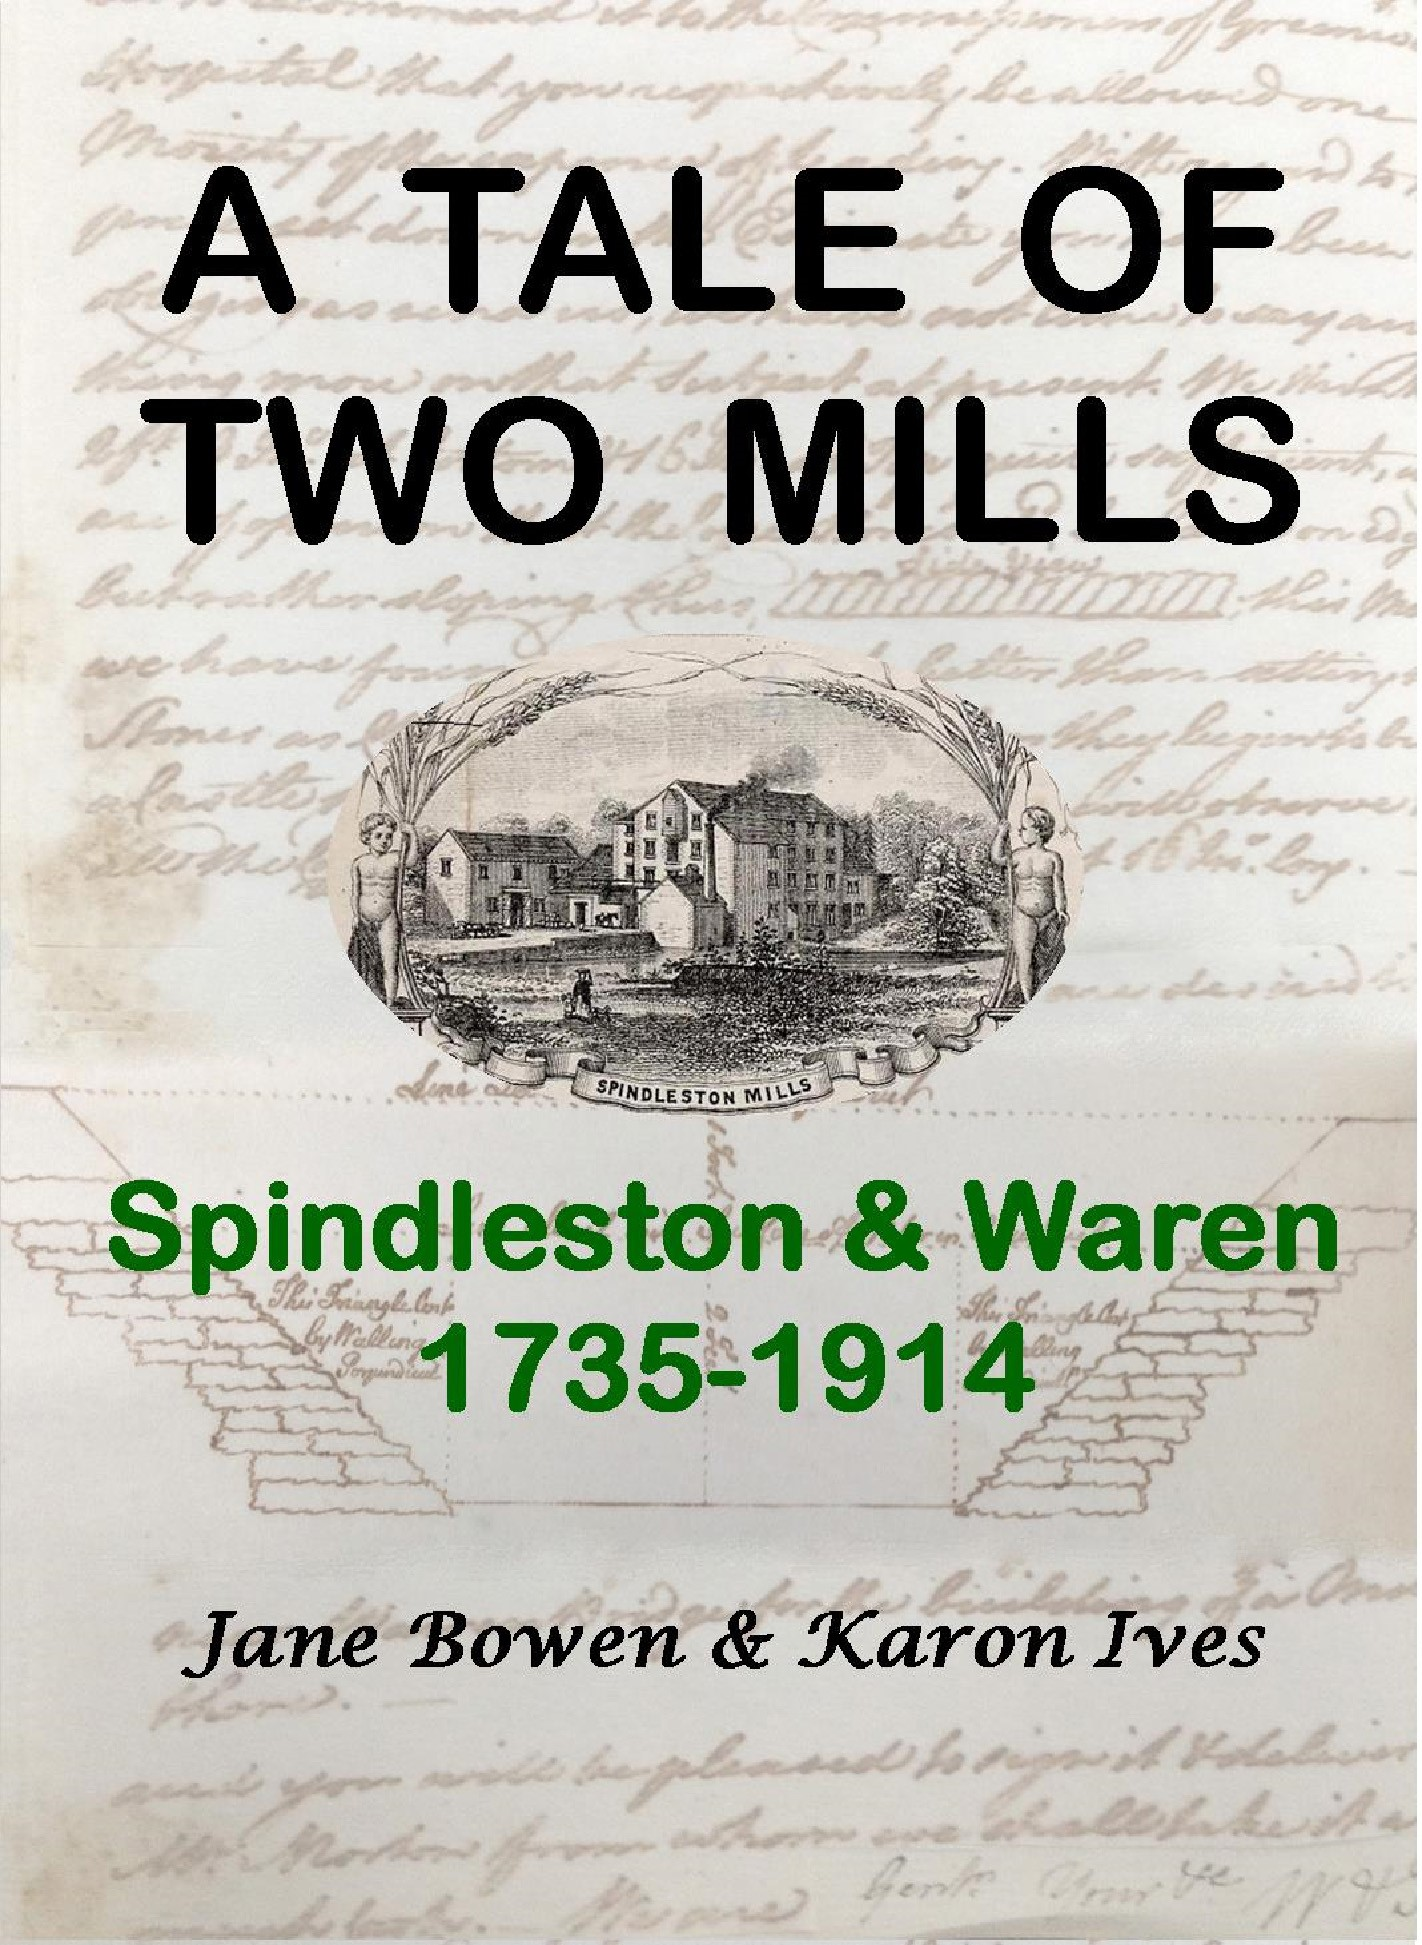 A Tale of Two Mills